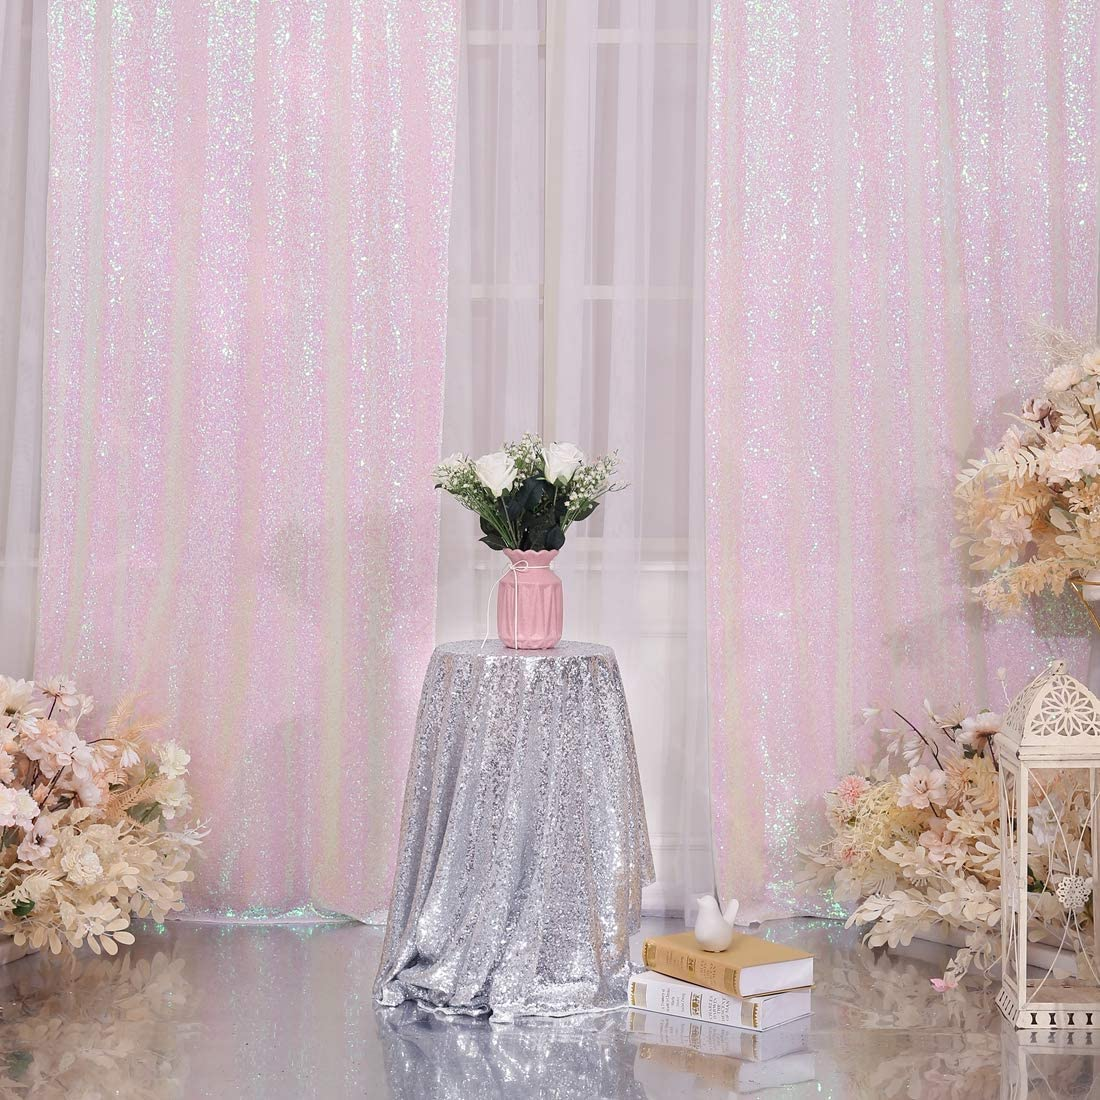 Juya Delight 2ft x 8ft x 2Pcs Black Sequin Photography Backdrop Curtain for Wedding Party Decoration Festival Ceremony